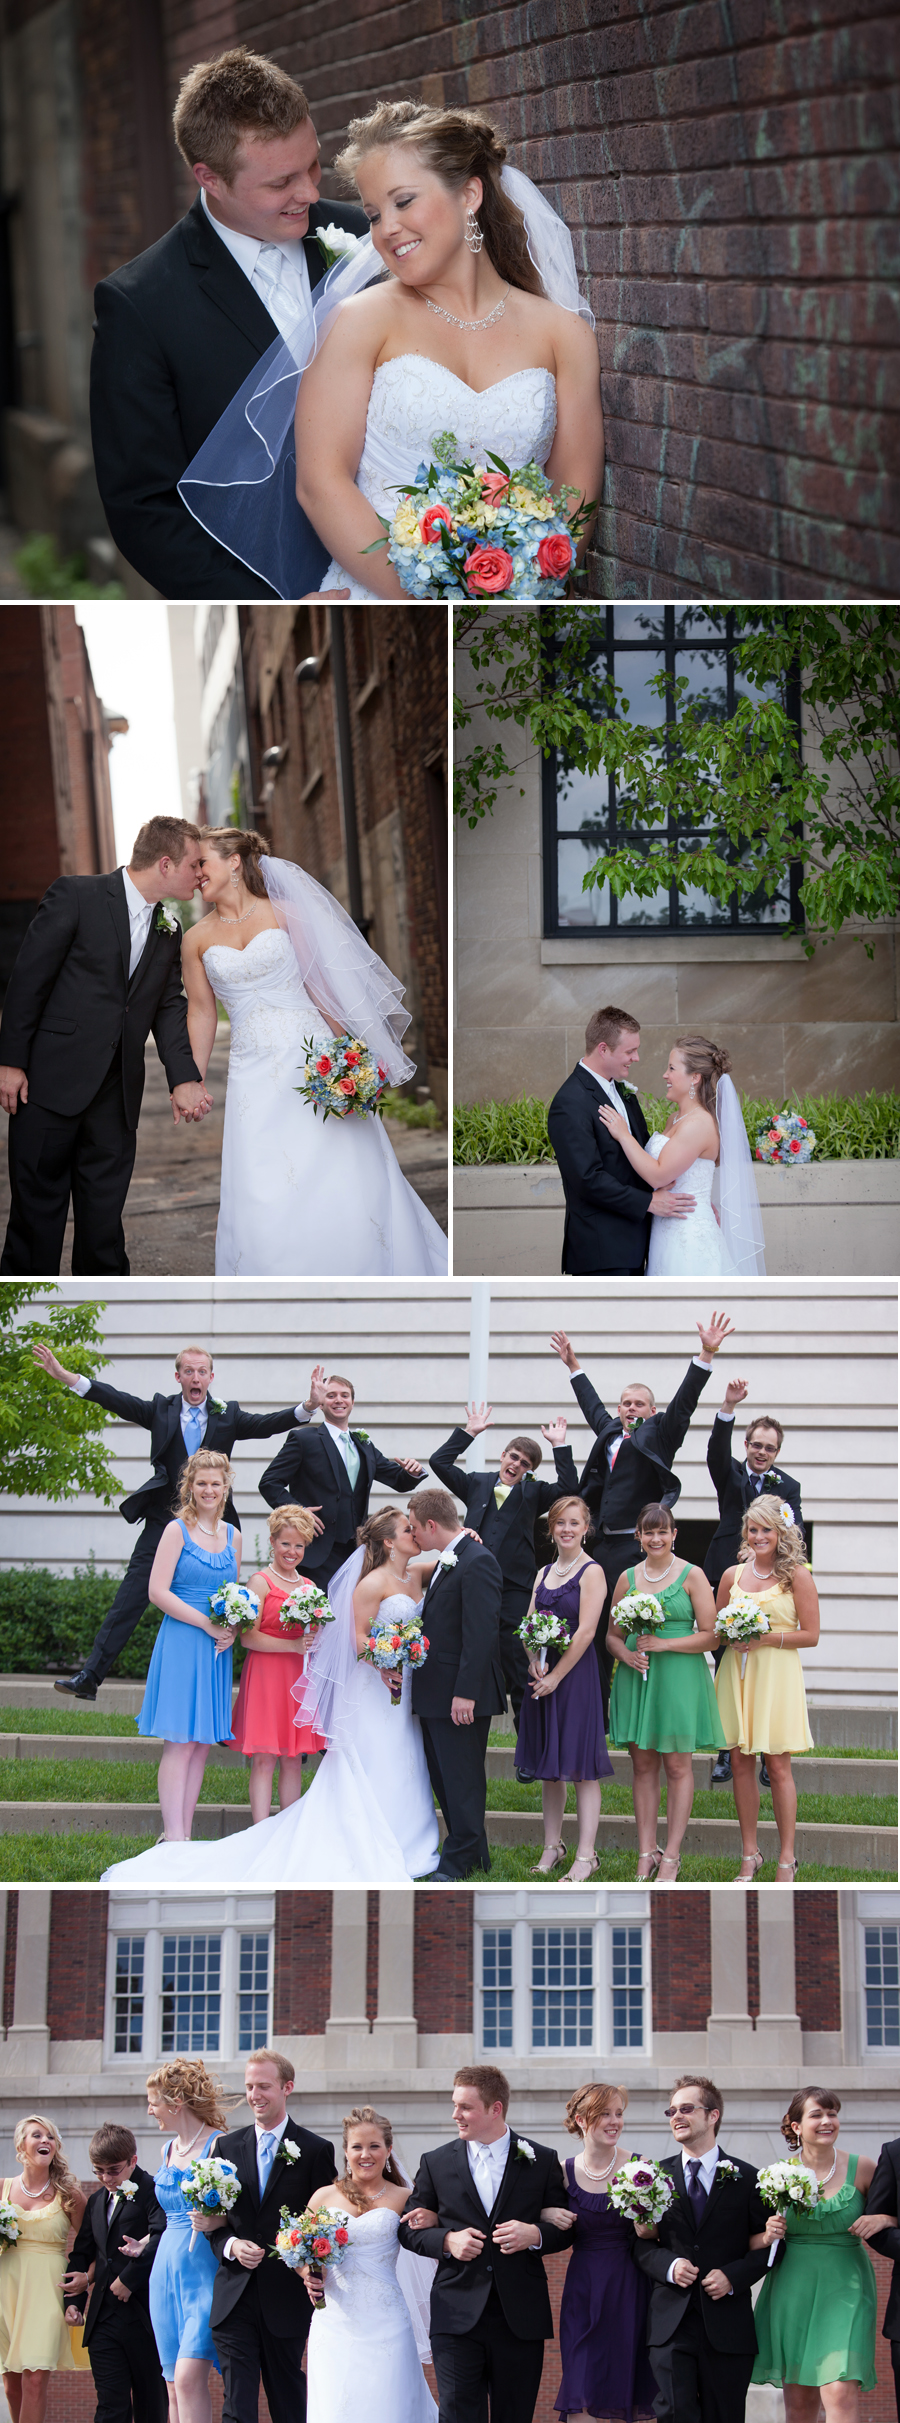 """Jonathan and Megan liked the urban graffiti look for a few of the pictures. The Henry Clay has a small alleyway right next to the doors which was exactly what we were looking for. One of my favorite shots is the bridal party shot with the guys jumping.  The guy to the very left in the blue definitely gets the award for """"most enthusiastic""""."""